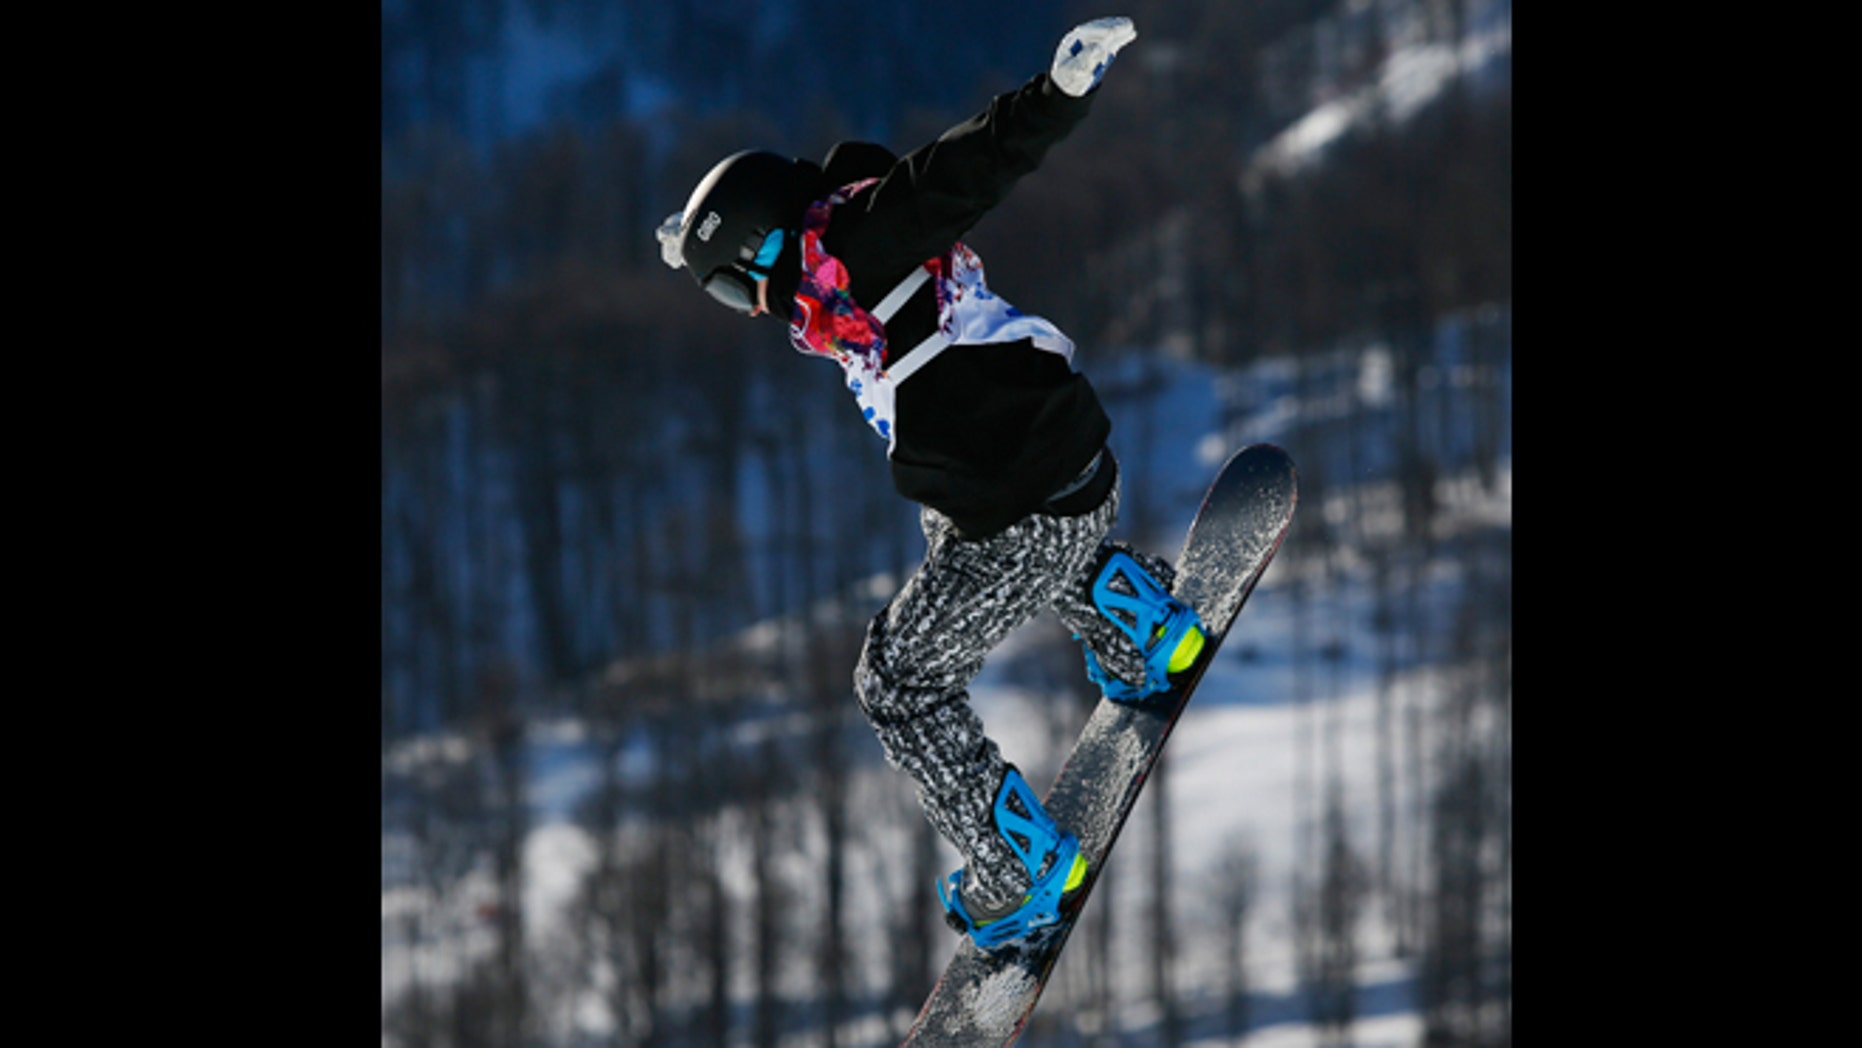 Feb. 6, 2014: Finland's Peetu Piiroinen takes a jump during men's snowboard slopestyle qualifying at the Rosa Khutor Extreme Park ahead of the 2014 Winter Olympics in Krasnaya Polyana, Russia.